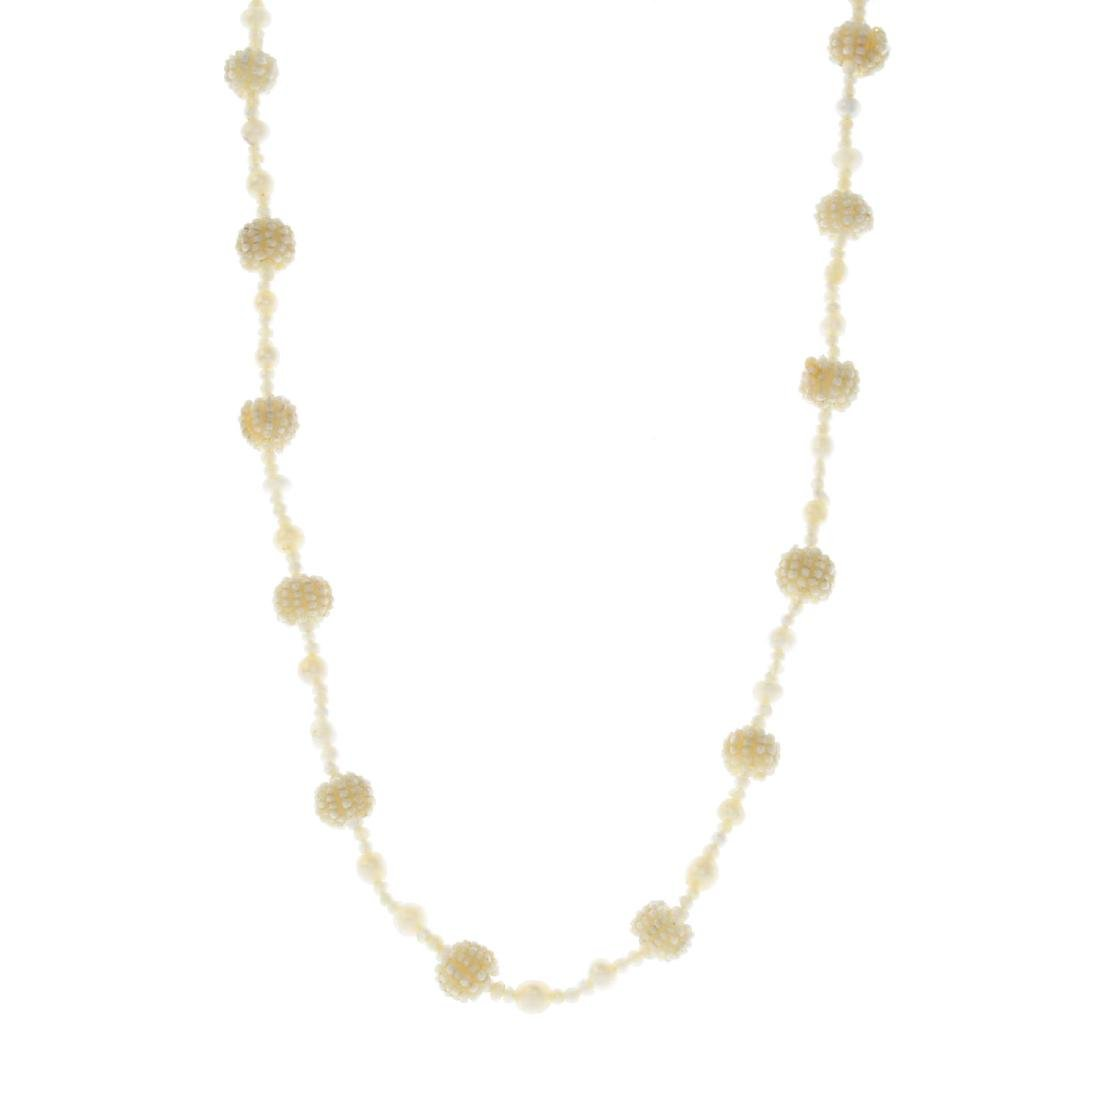 Two pearl necklaces. The first designed as a series of